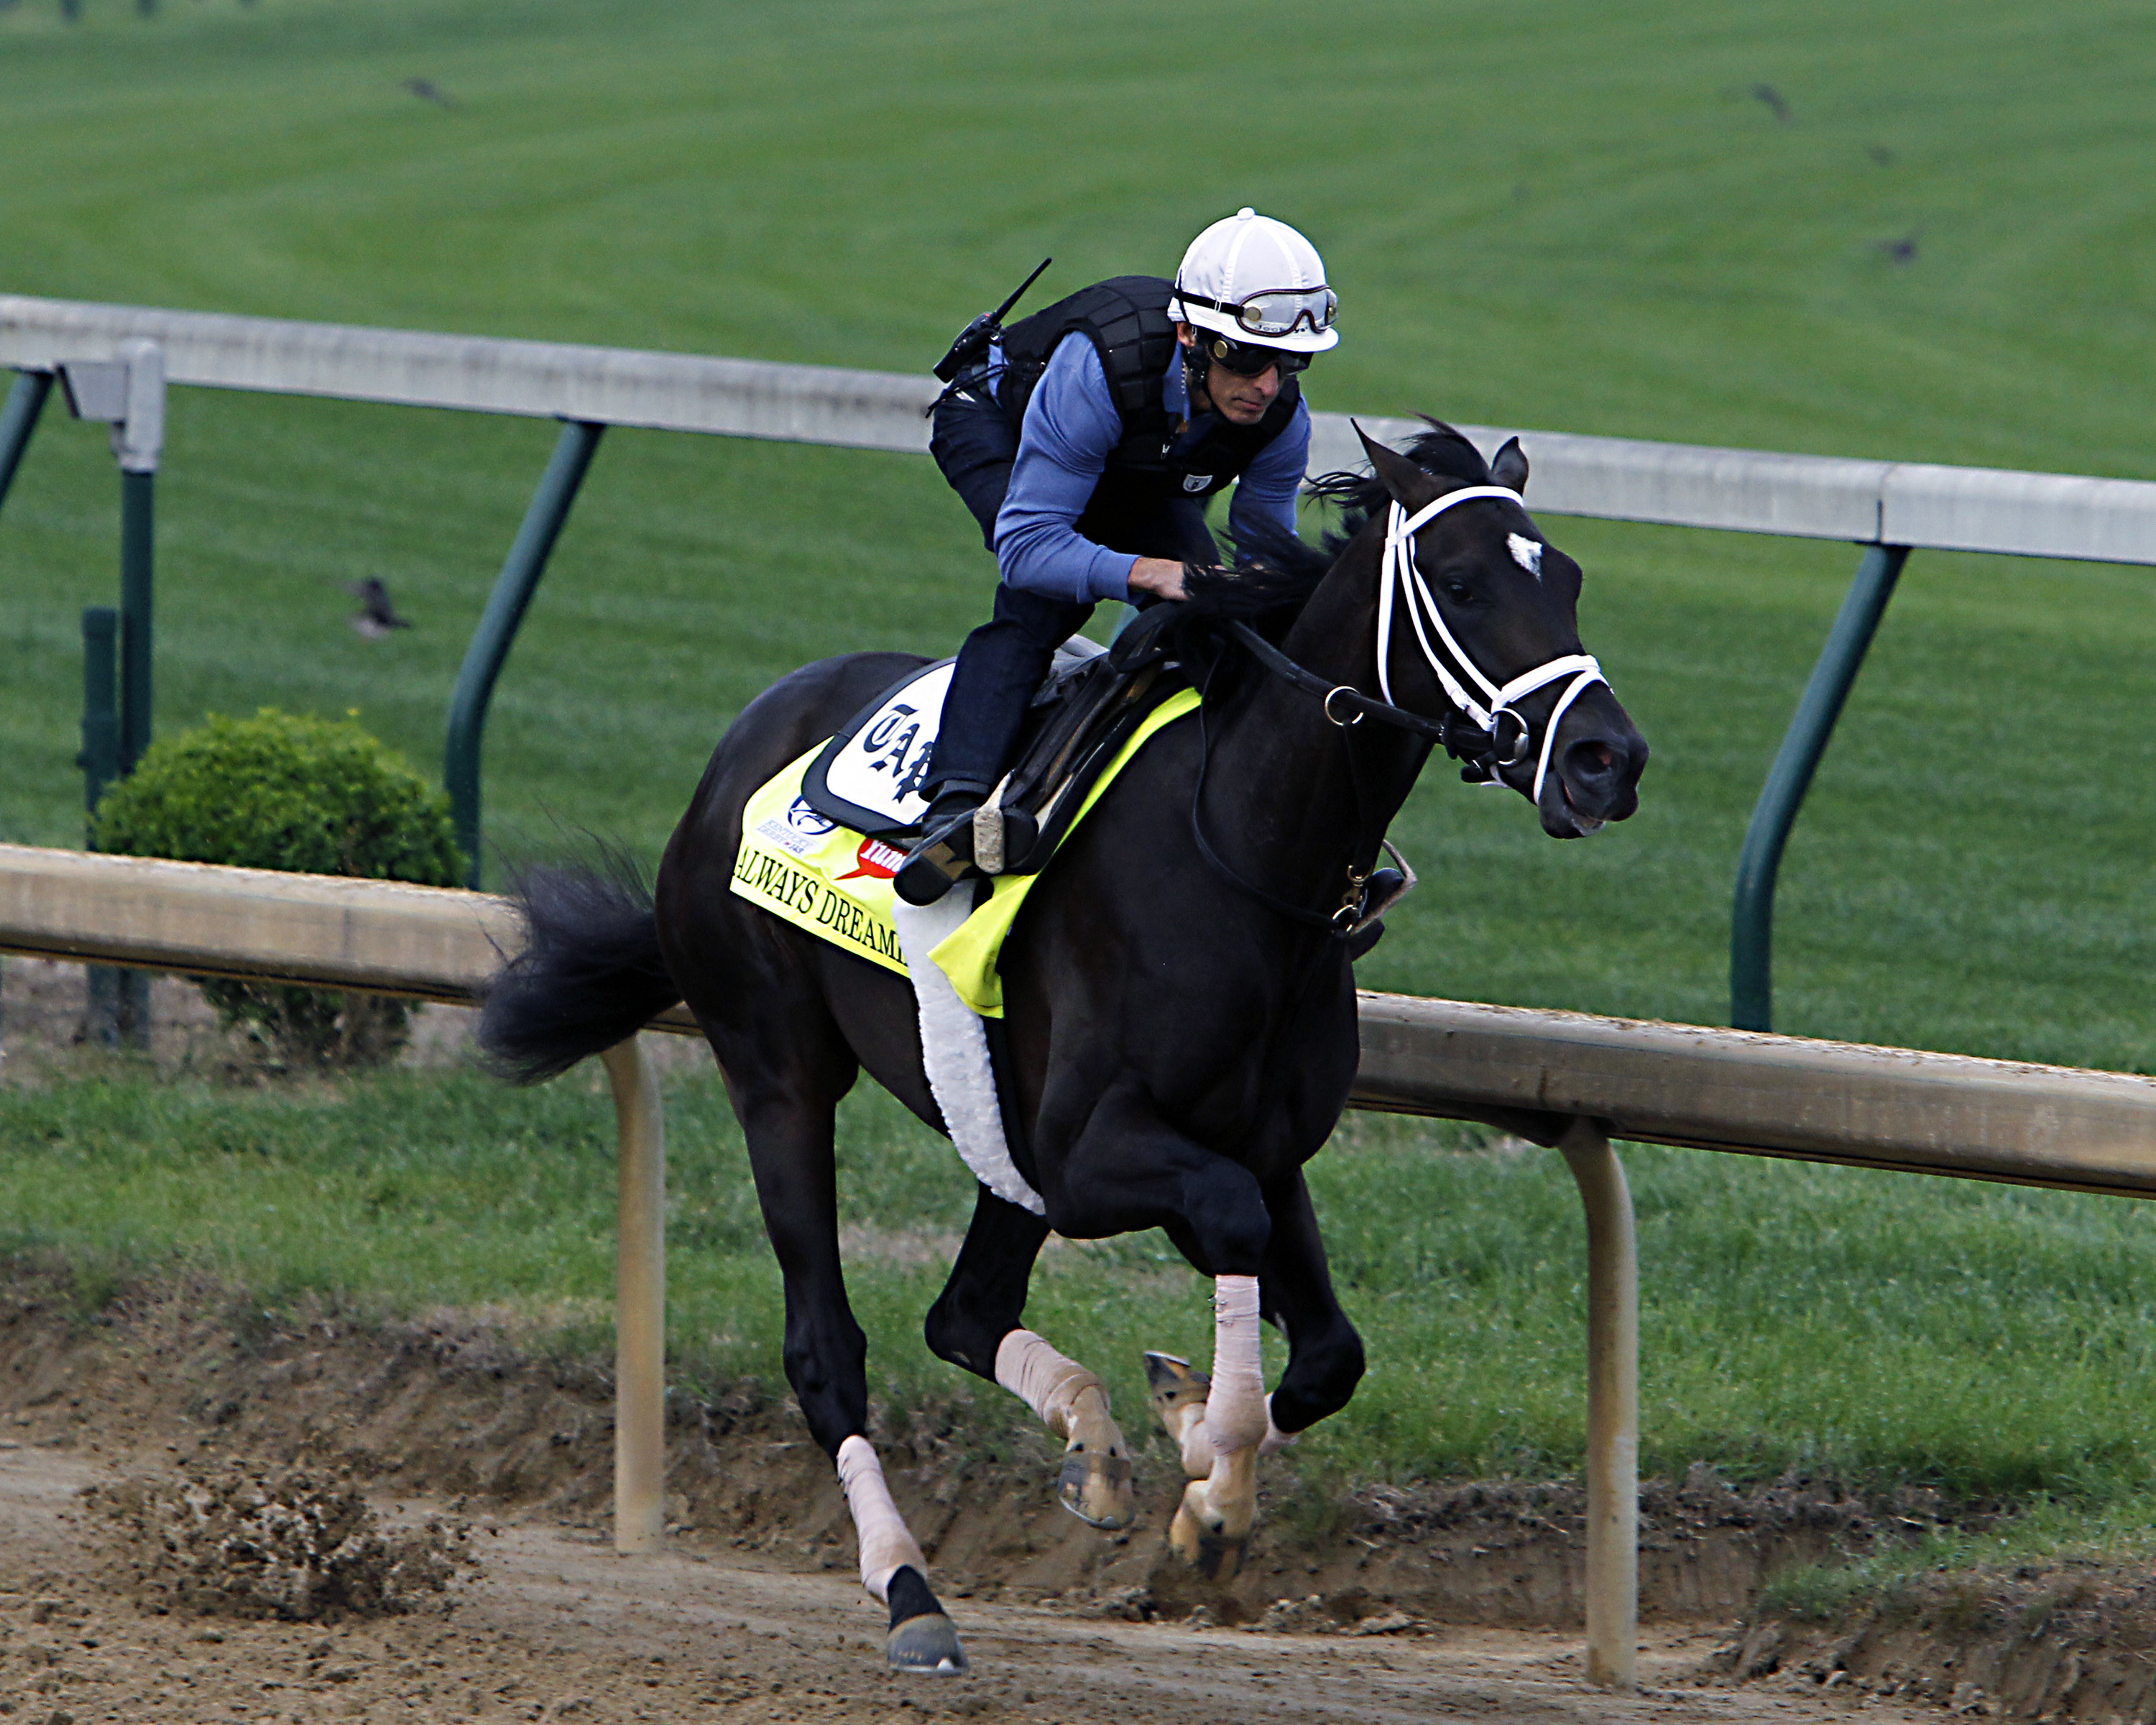 Kentucky Derby hopeful Always Dreaming works out under jockey John Velazquez at Churchill Downs in Louisville, Ky., Friday, April 28, 2017. Always Dreaming is one of five colts eyeing the May 6th horse race from the barn of trainer Todd Pletcher. (AP Phot